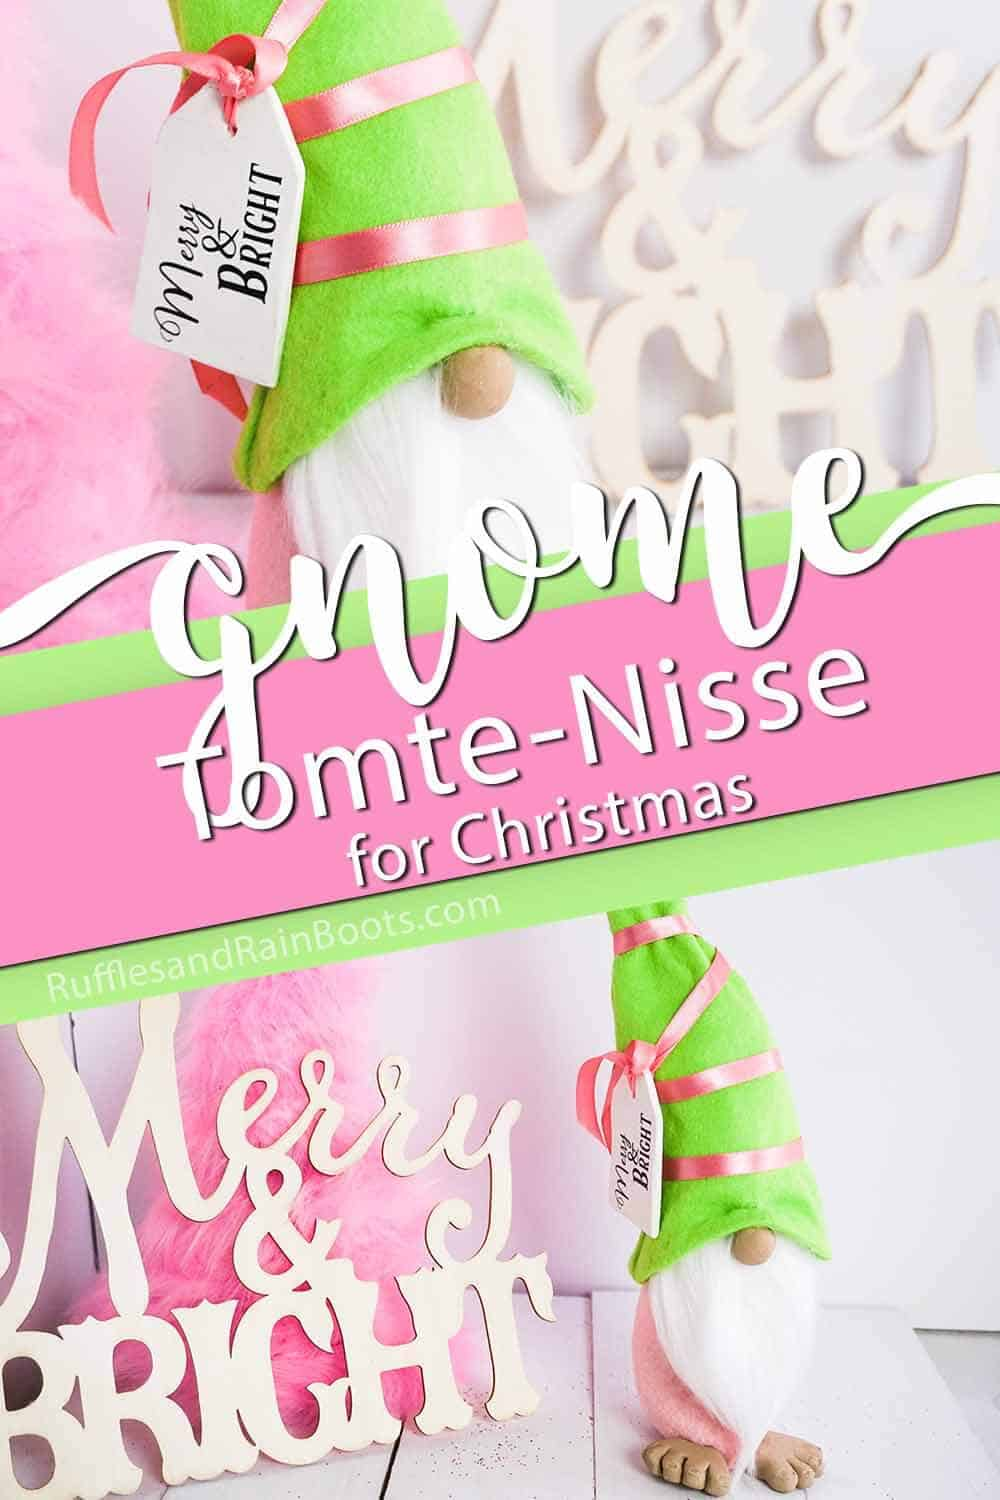 photo collage of pink and green bright tomte for christmas with text which reads gnome tomte nisse for christmas